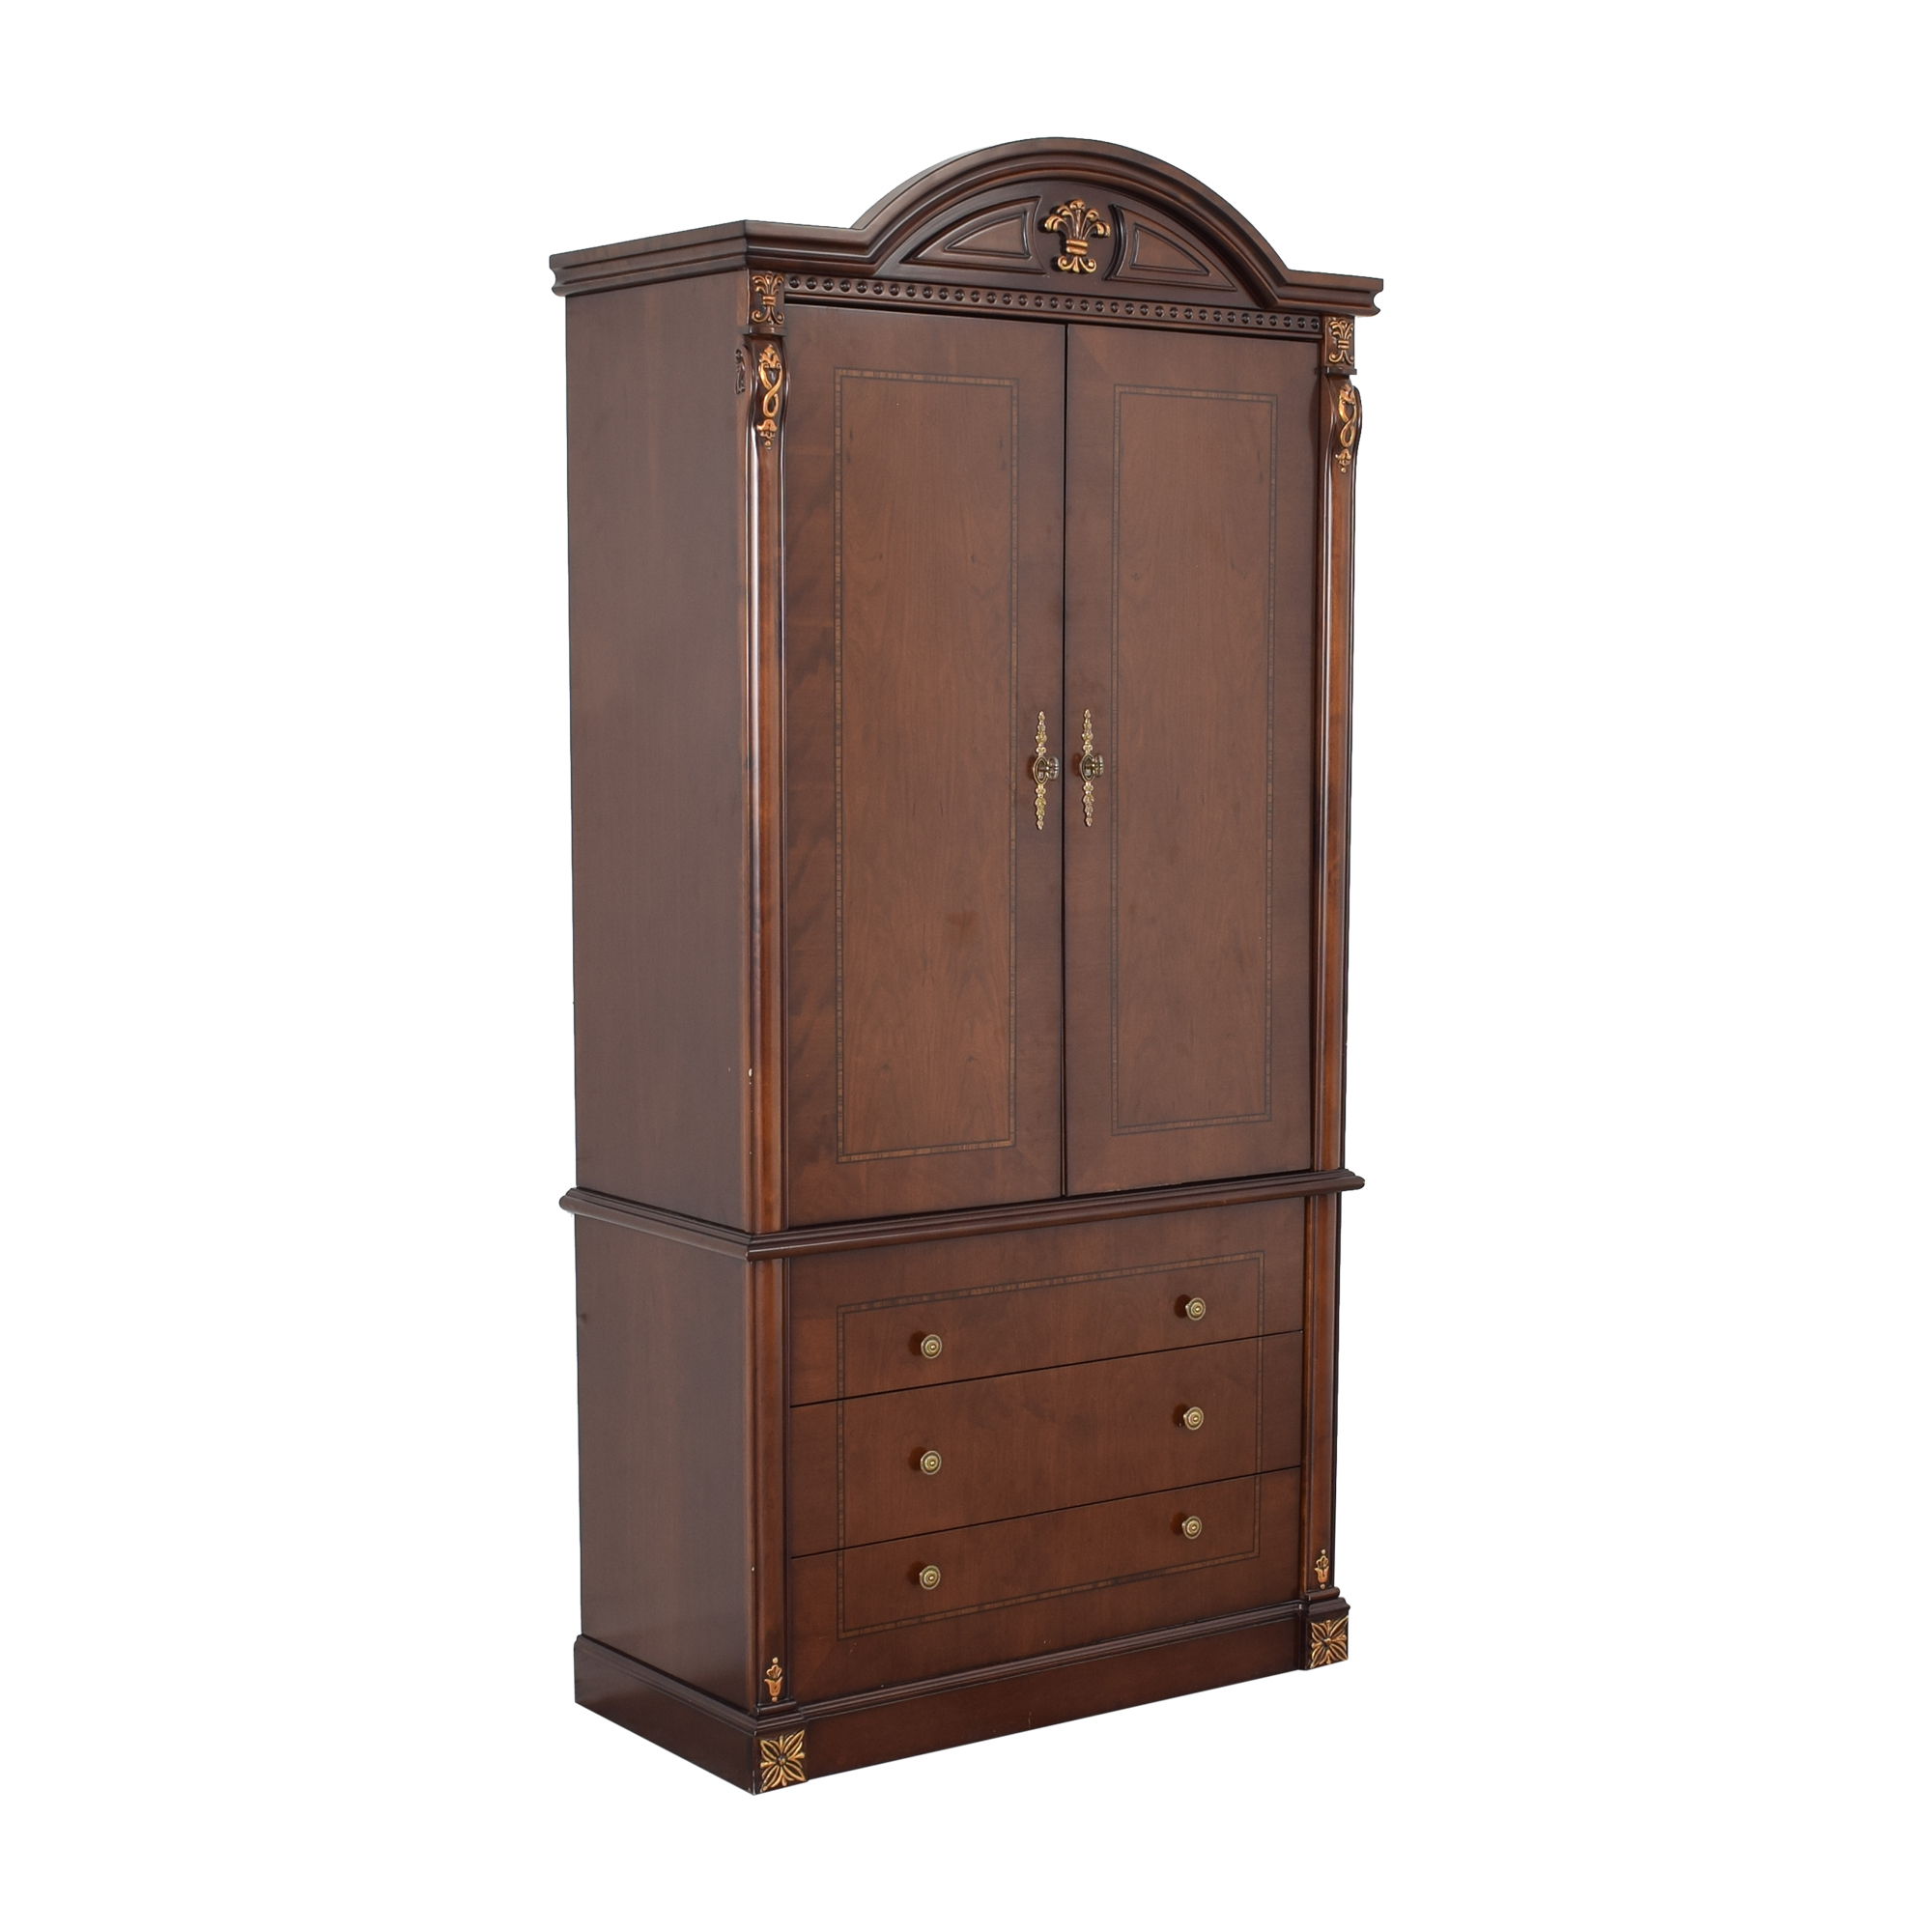 Chippendale Style Wardrobe ma